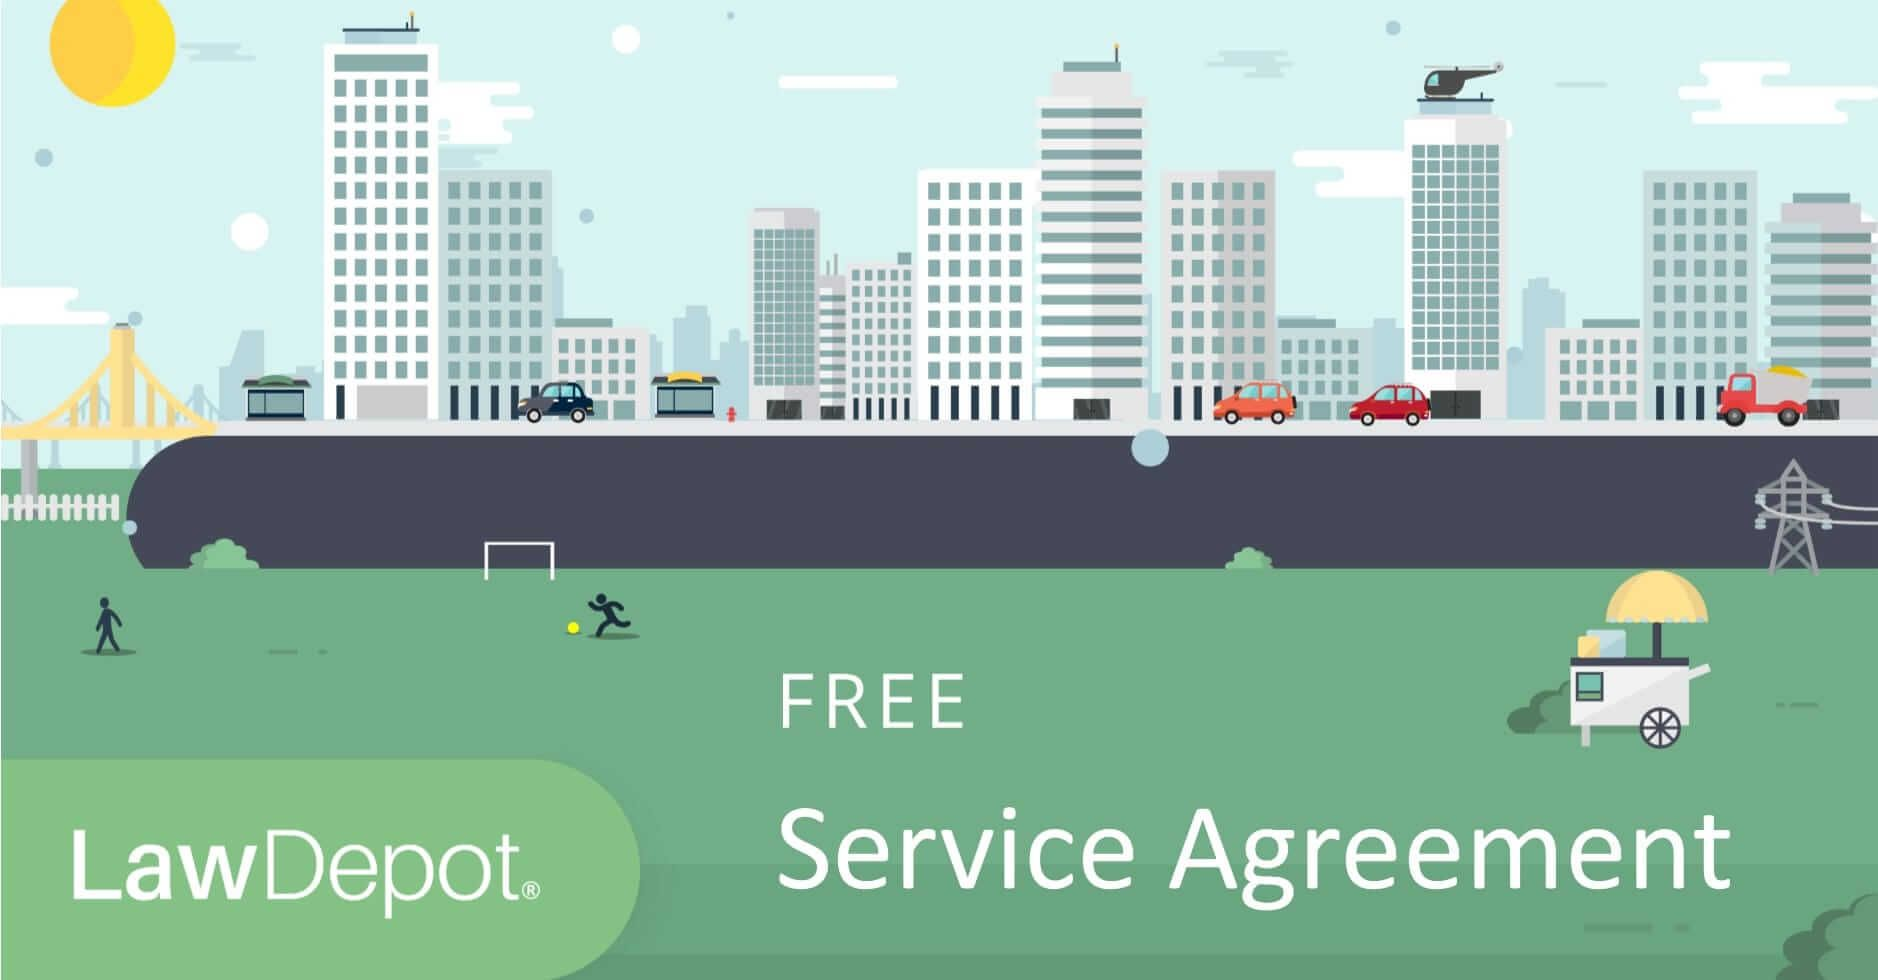 003 Staggering Free Service Contract Template Idea  Printable Form Agreement Australia UkFull